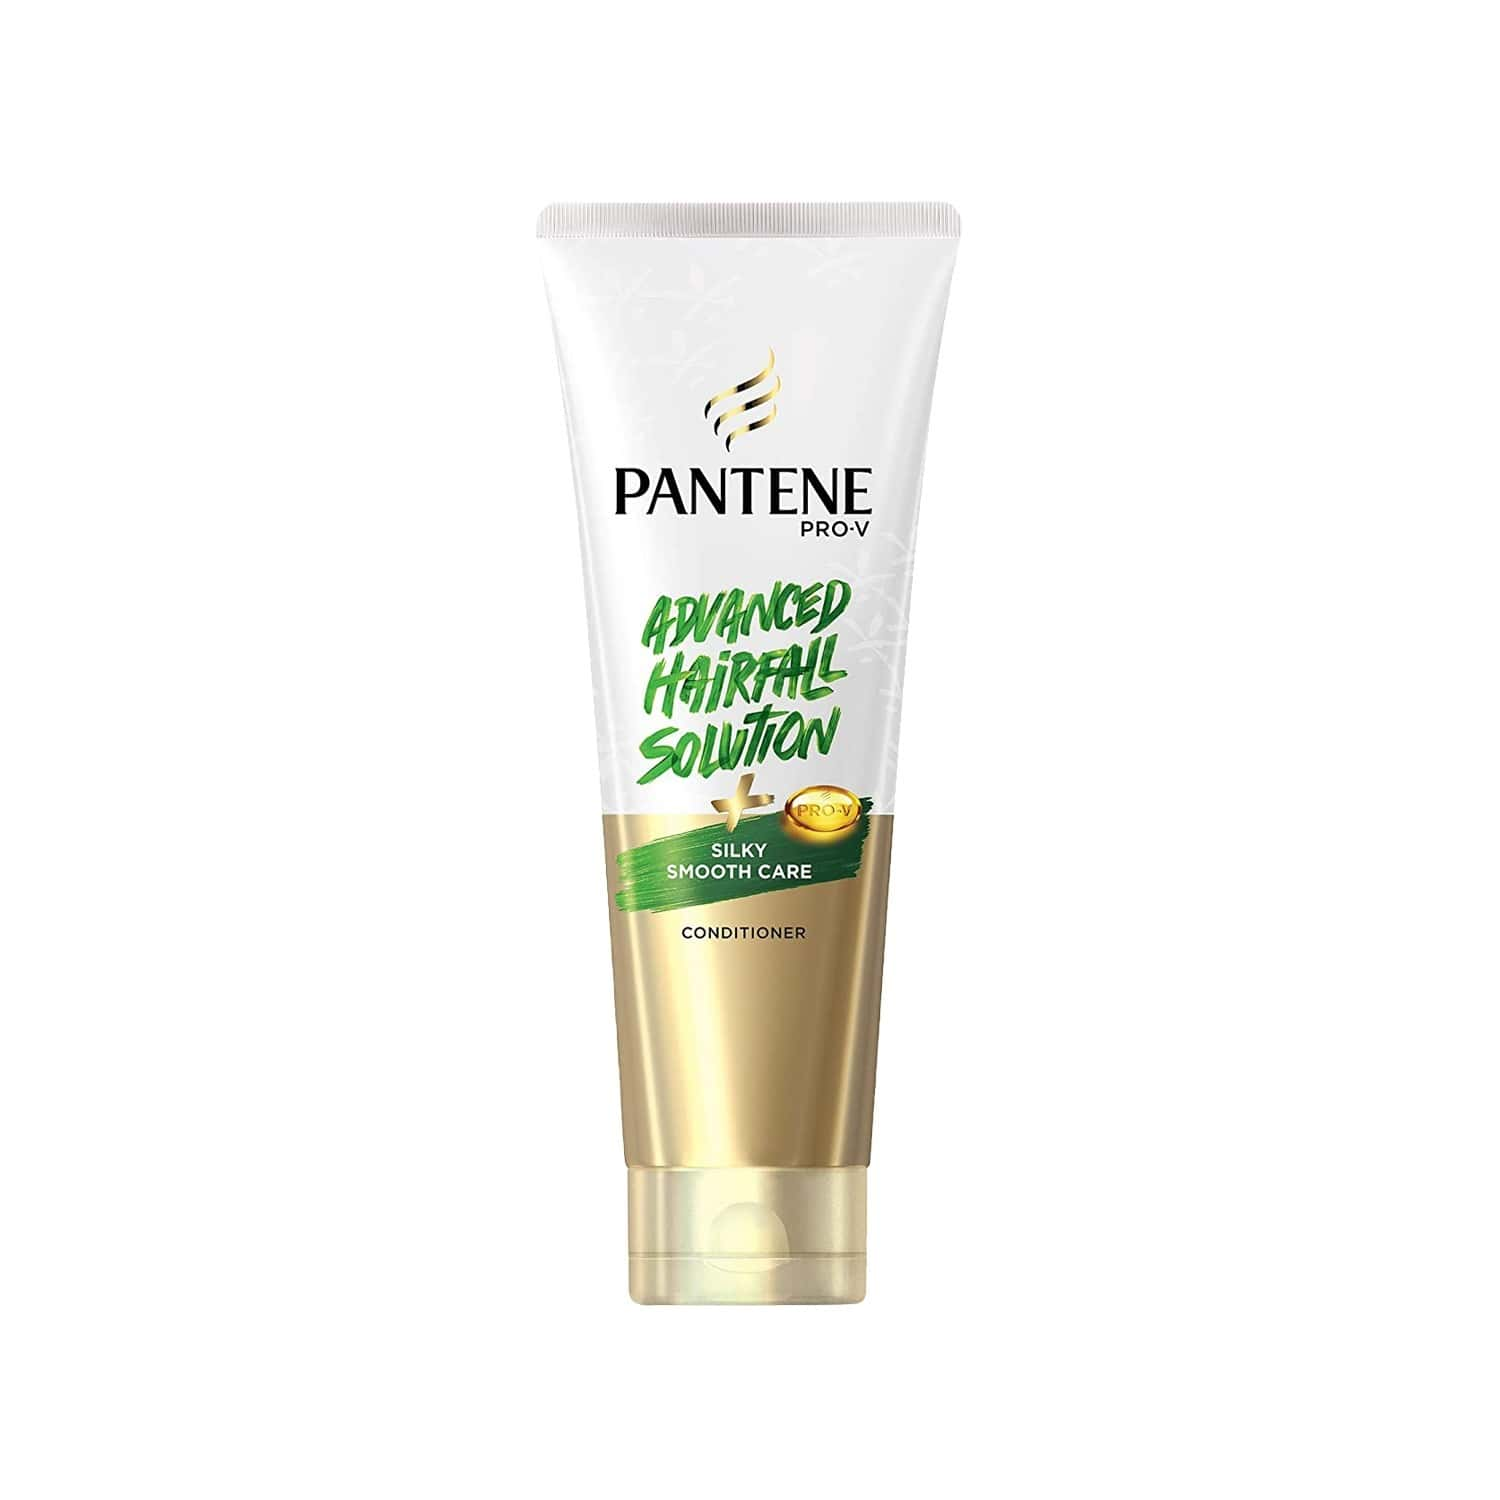 Pantene Advanced Hair Fall Solution Silky Smooth Care Conditioner - 200ml